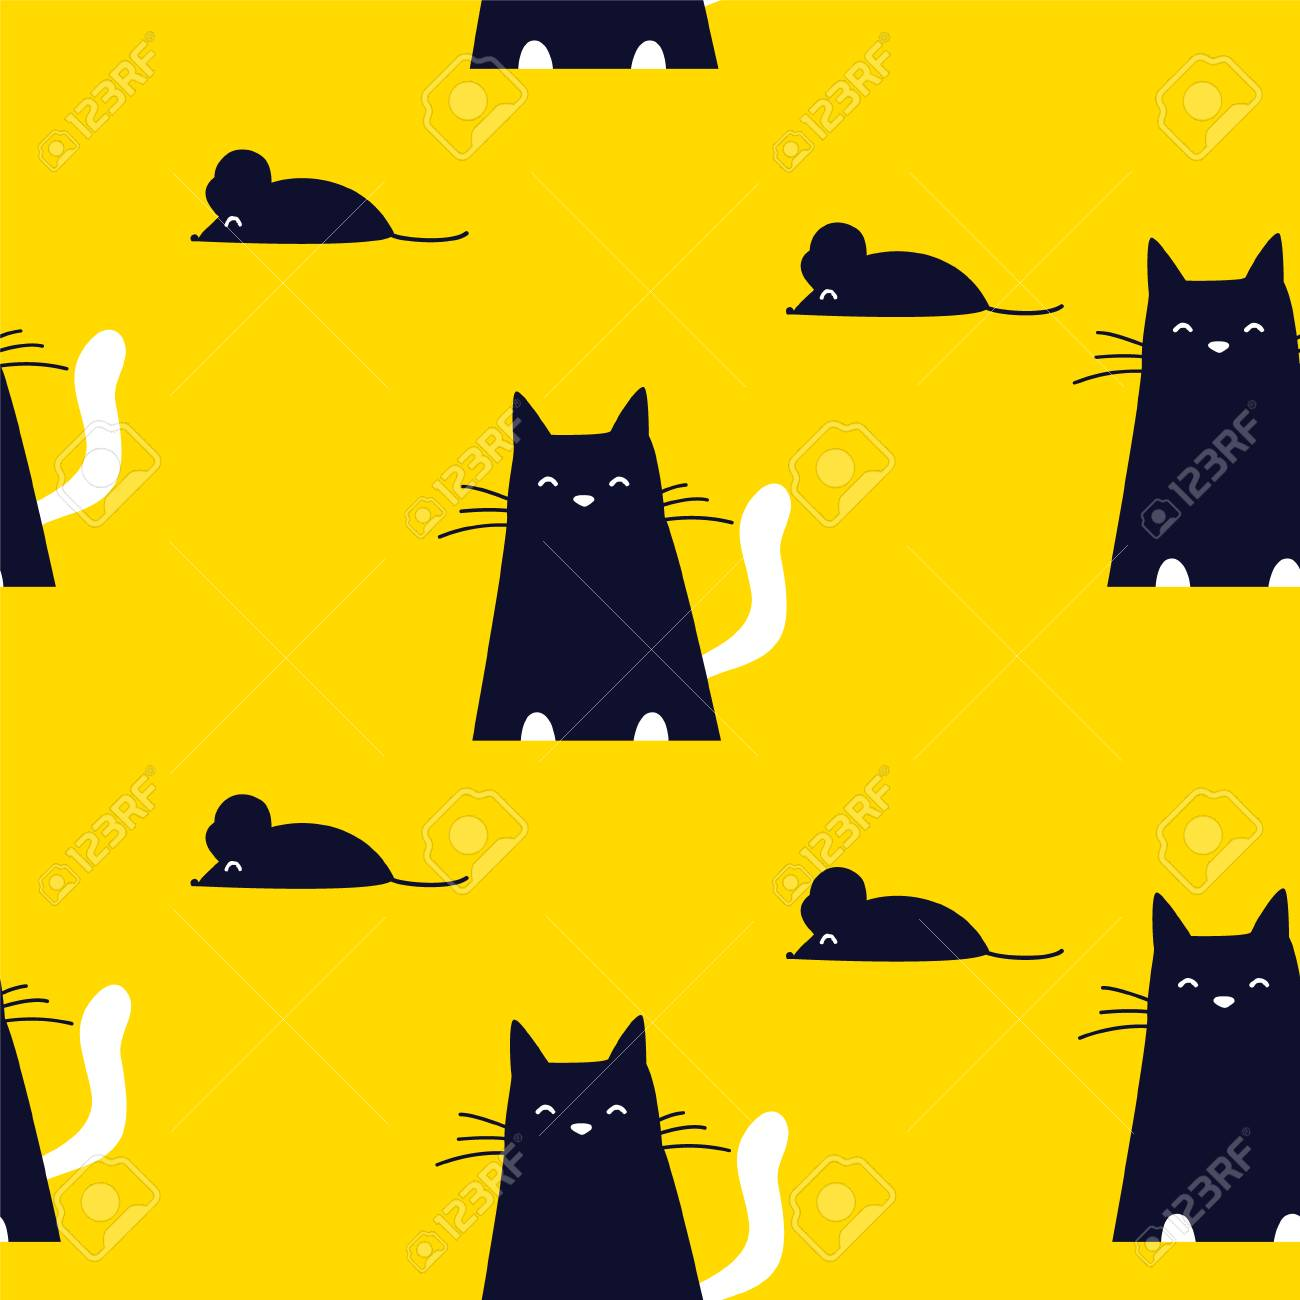 Cute Pattern With Black Cat And Mouse On Yellow Background Ornament Royalty Free Cliparts Vectors And Stock Illustration Image 102668644